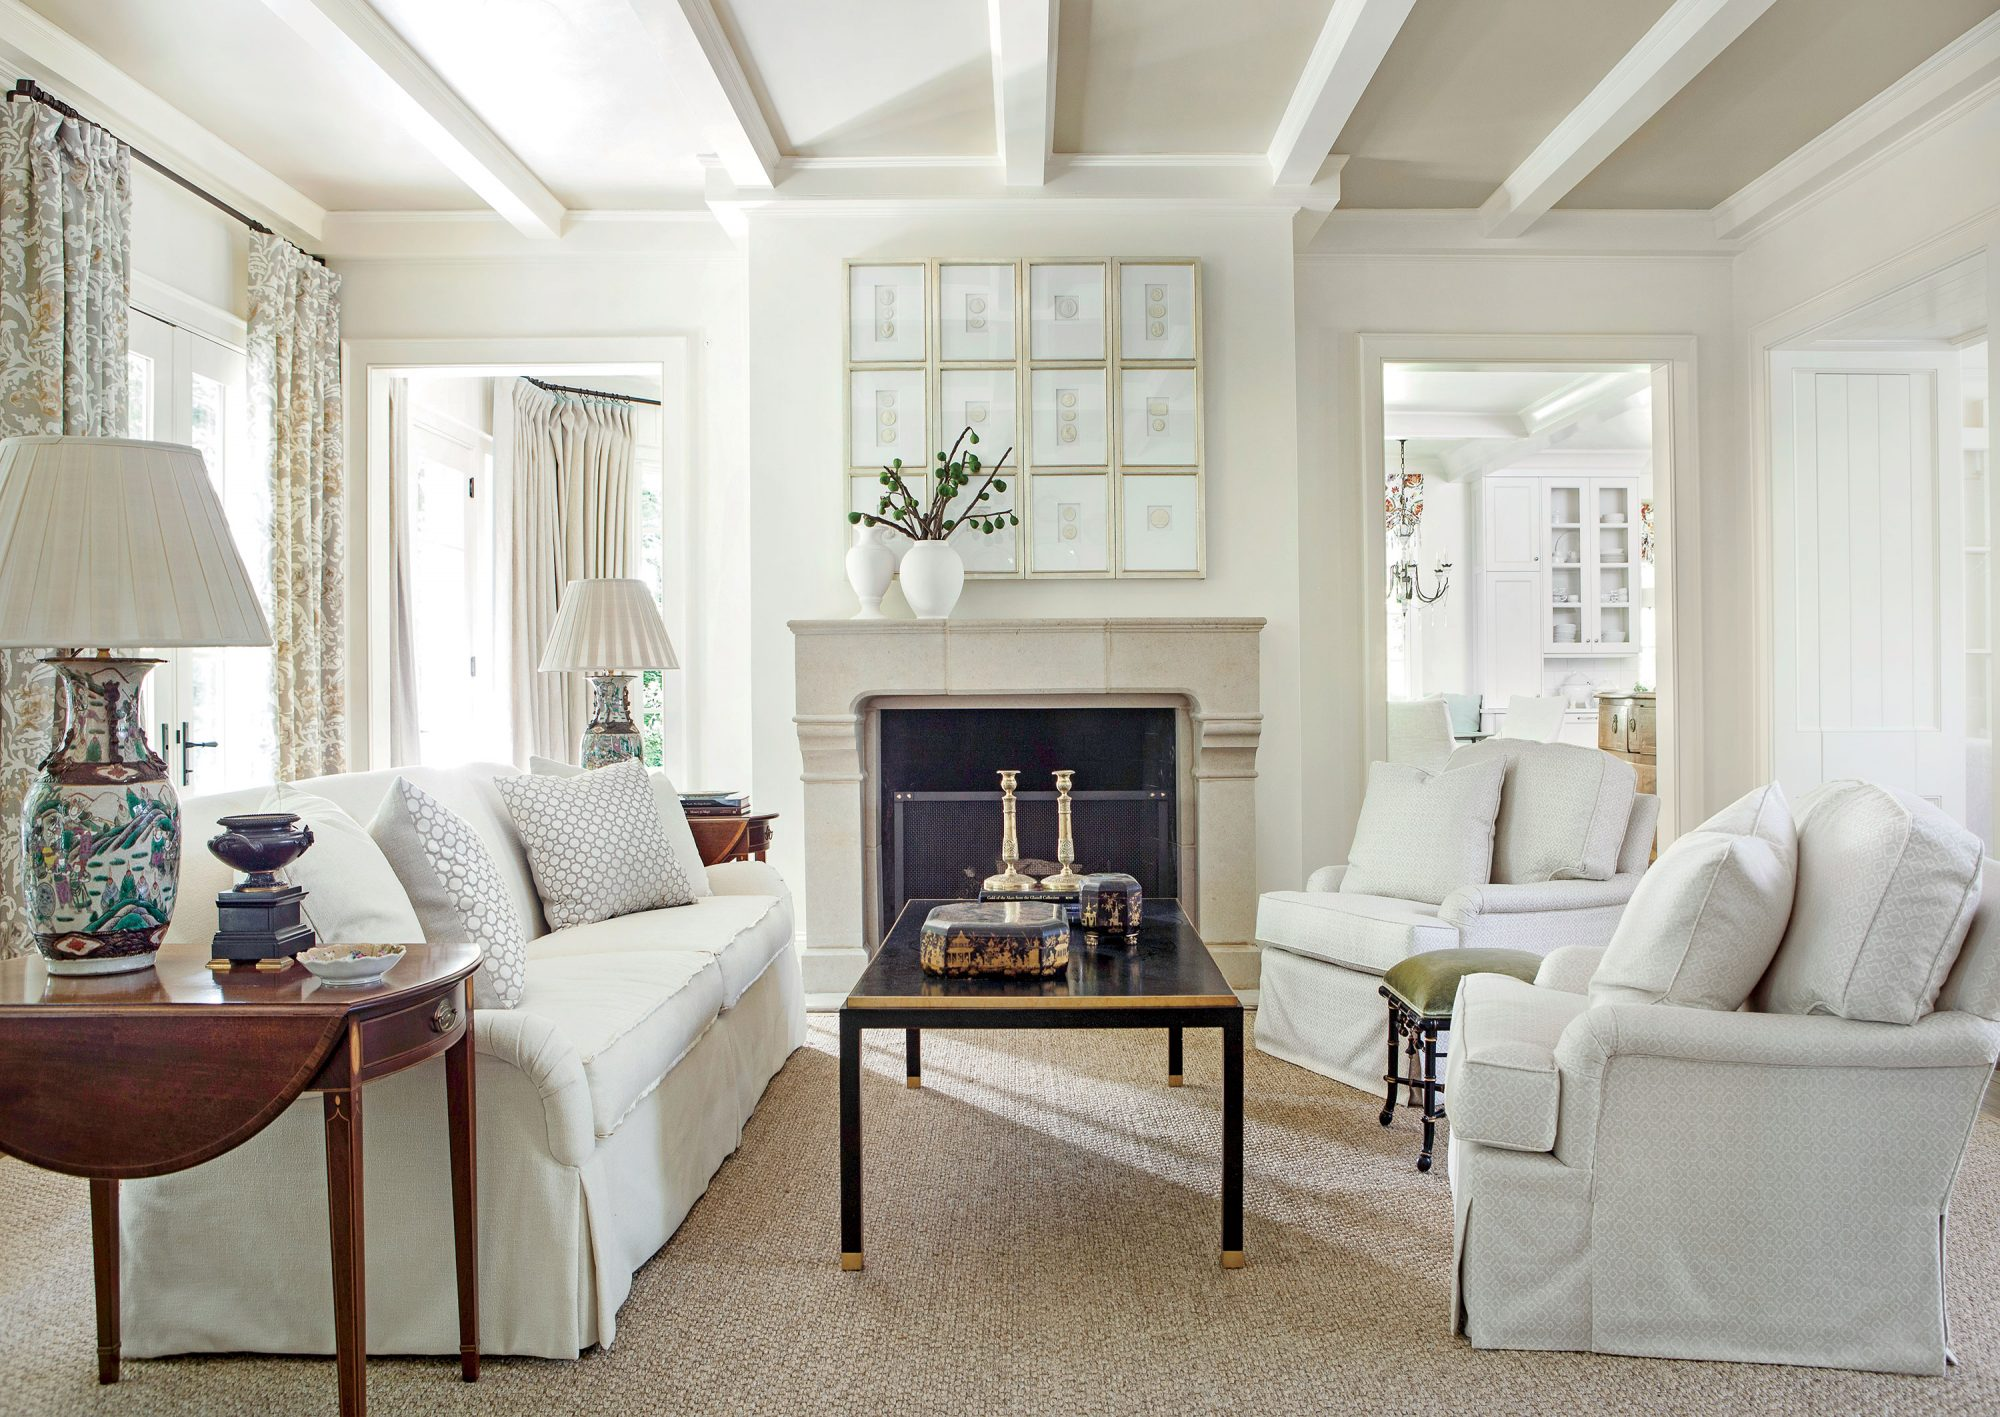 14 Warm White Paint Colors To Cozy Up Your Space Southern Living